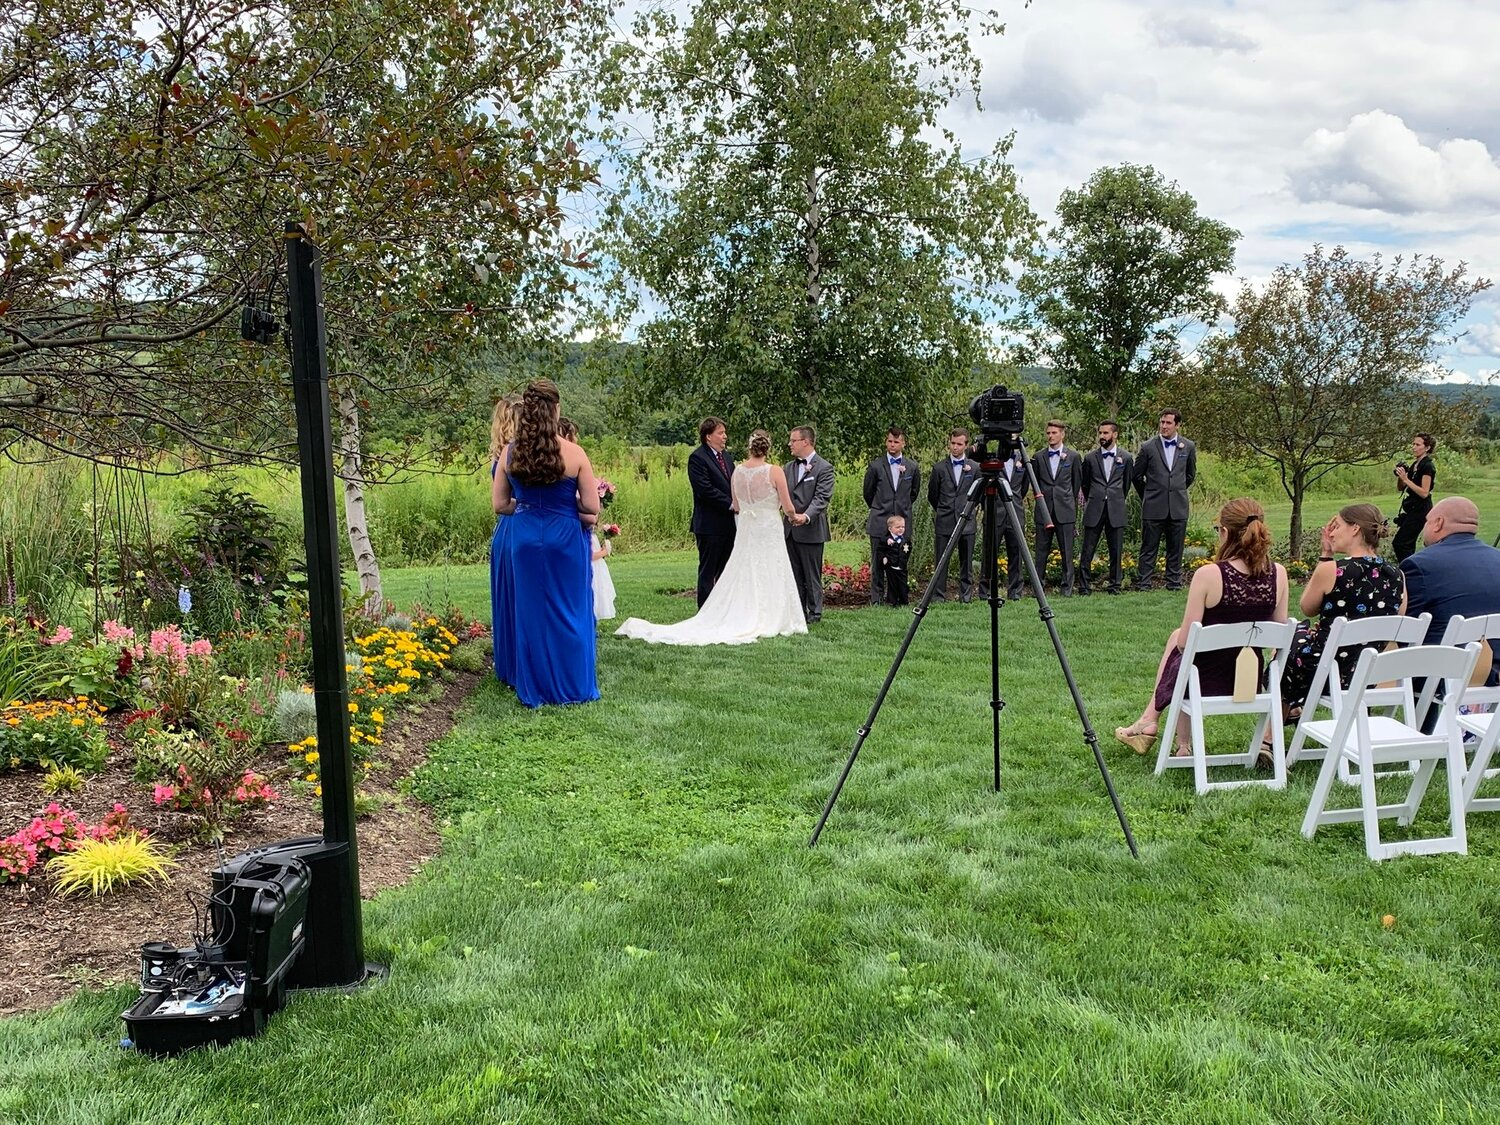 Wedding Ceremony at The Orchard at Rocking Horse Farm, Jamesville NY.